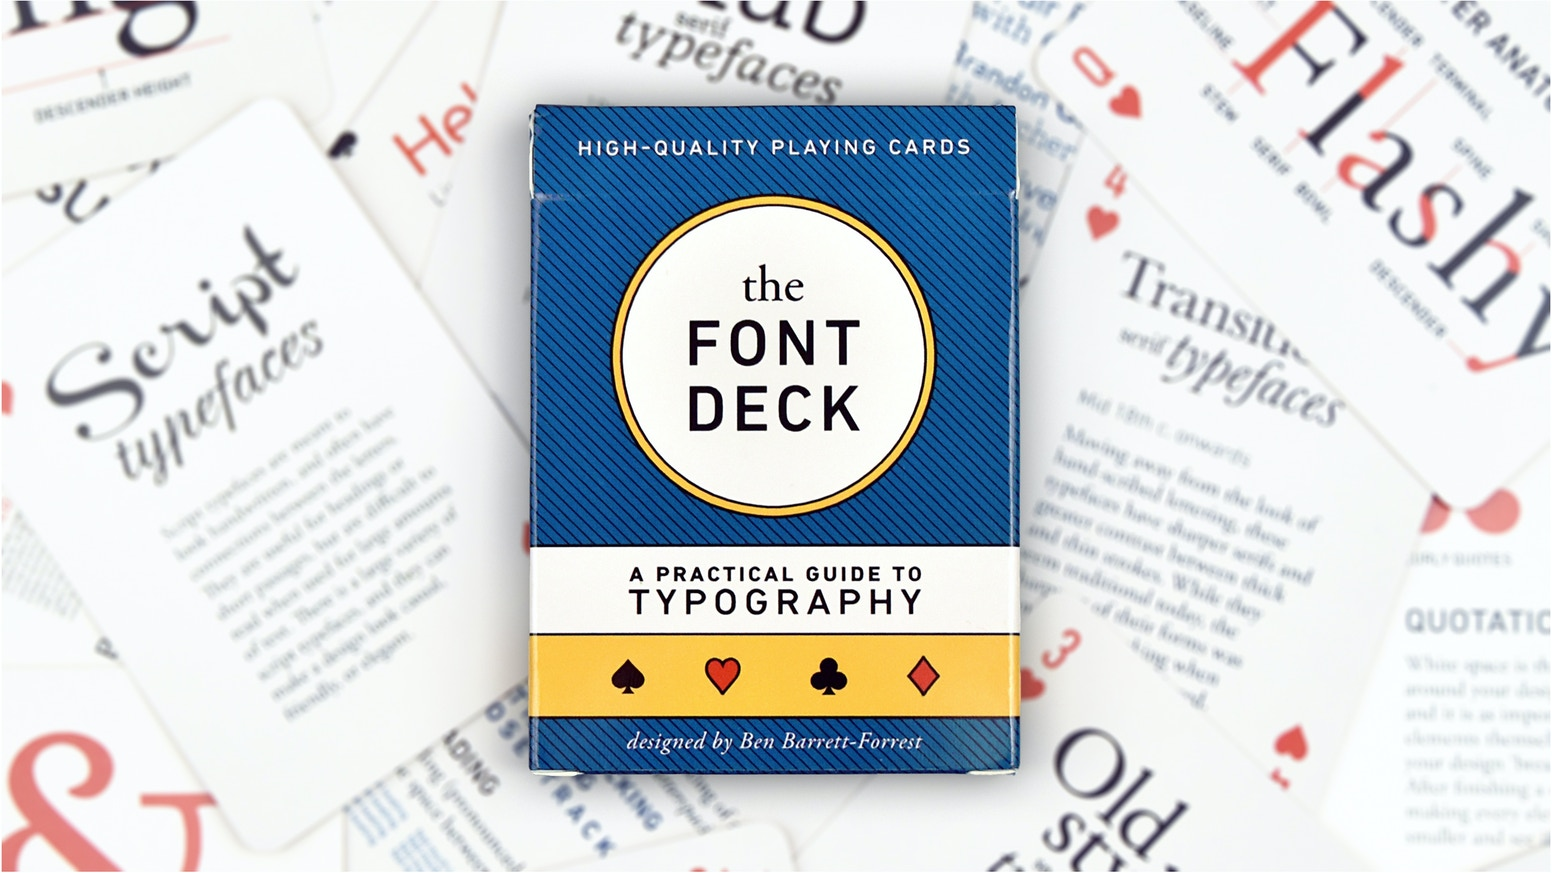 Learn about typography while playing poker. This beautiful, casino-quality deck of cards doubles as a practical guide to fonts.